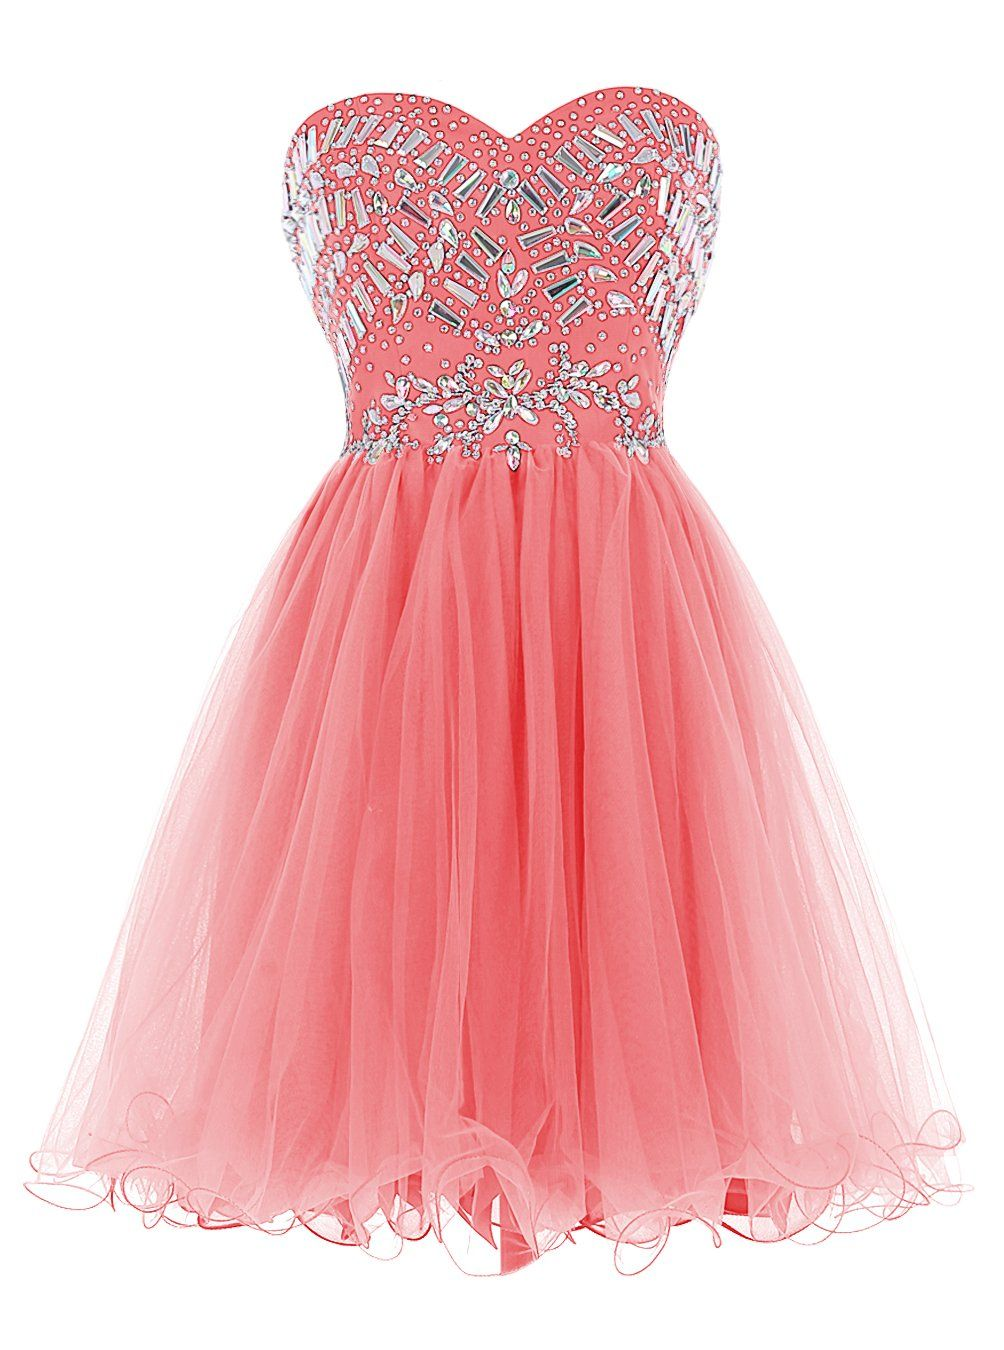 Tideclothes womenus sweetheart homecoming dress short party dress